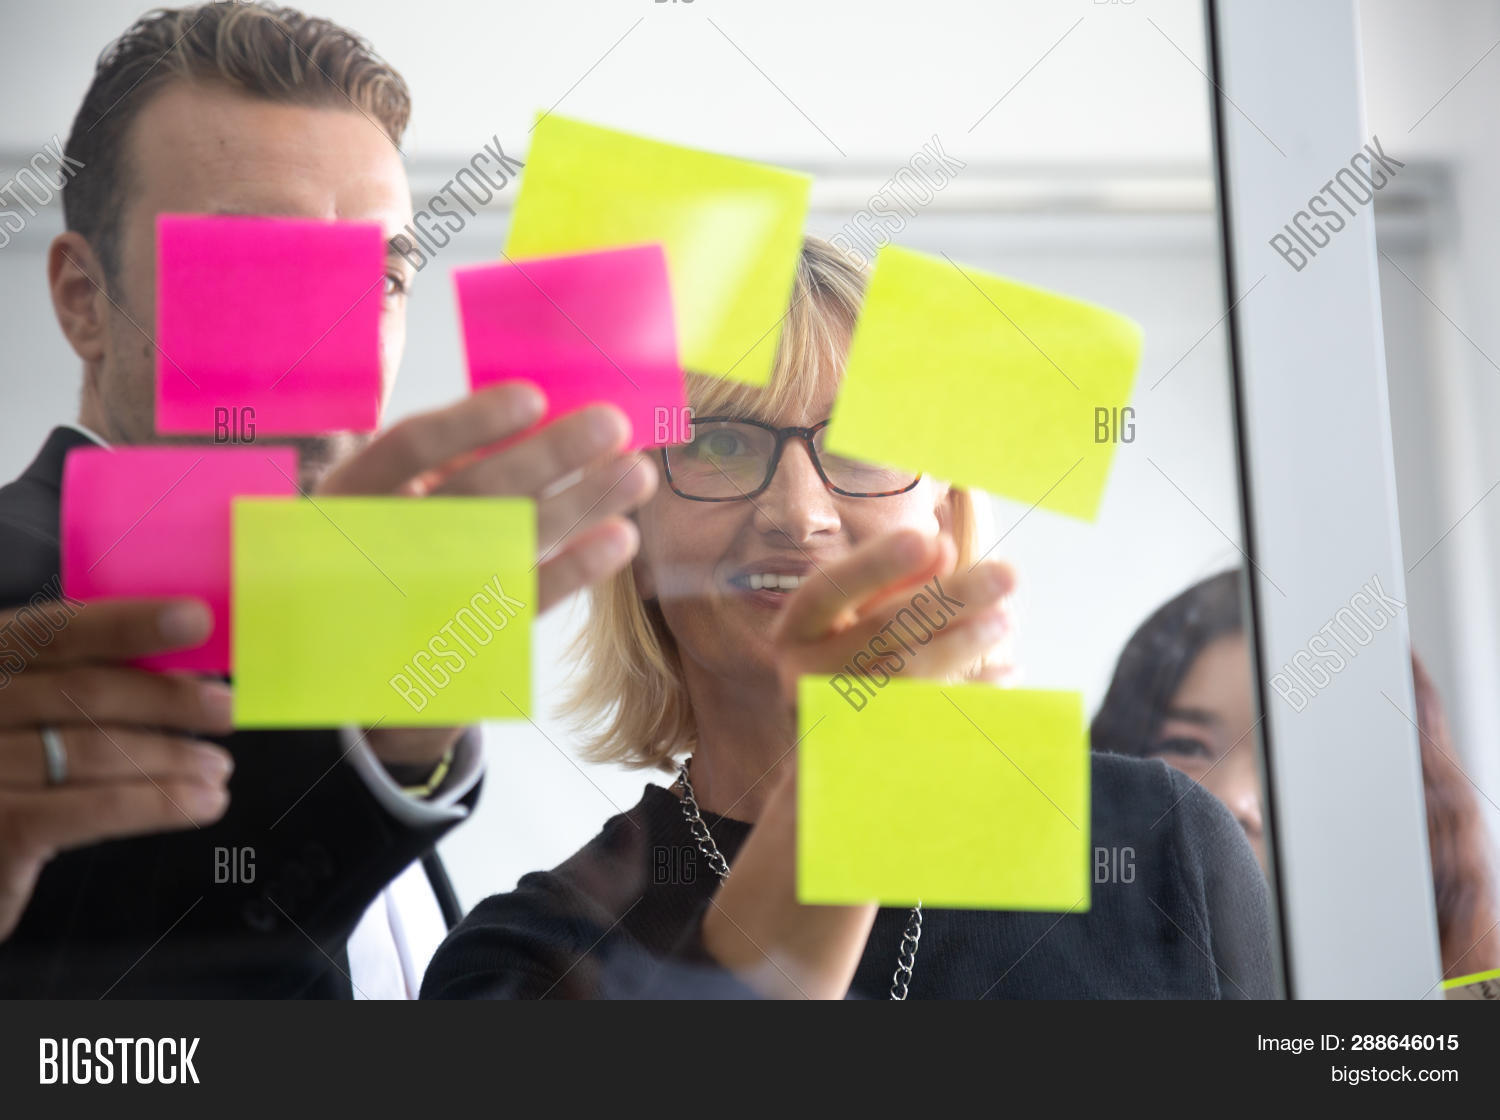 agile,appointment,attaching,board,business,date,deadline,diagram,do,due,efficiency,execute,goal,hand,information,kanban,lean,list,male,man,management,manufacturing,method,note,office,organization,paper,person,physical,planning,process,progress,project,reminder,schedule,scrum,software,start,step,stickers,sticky,strategy,target,task,teamwork,text,time,to,wall,work